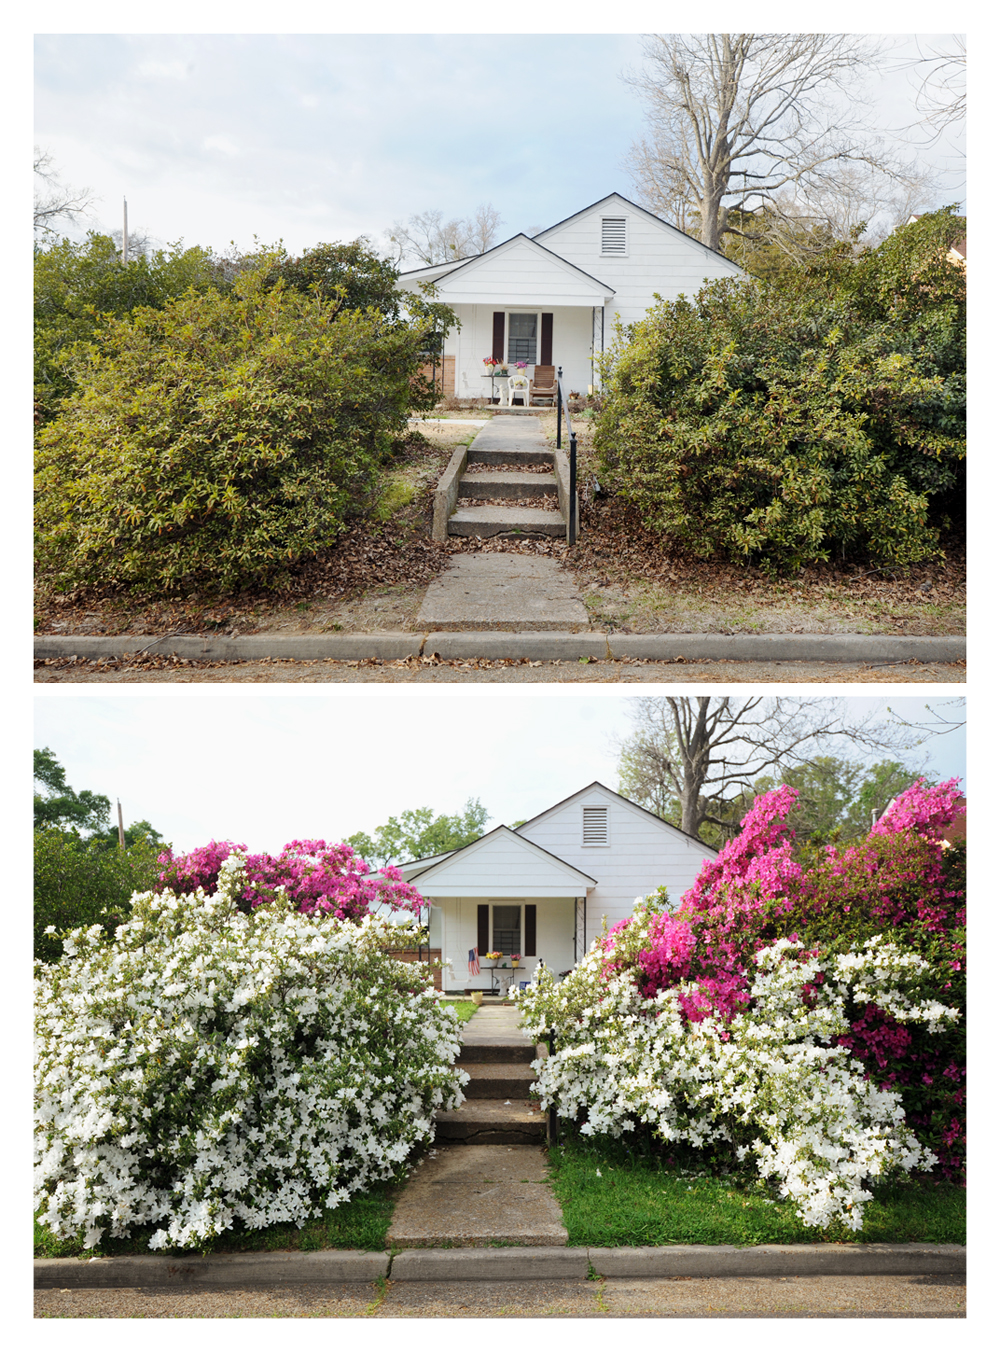 Ben HIllyer, Winter 2014 top, Spring 2012 below